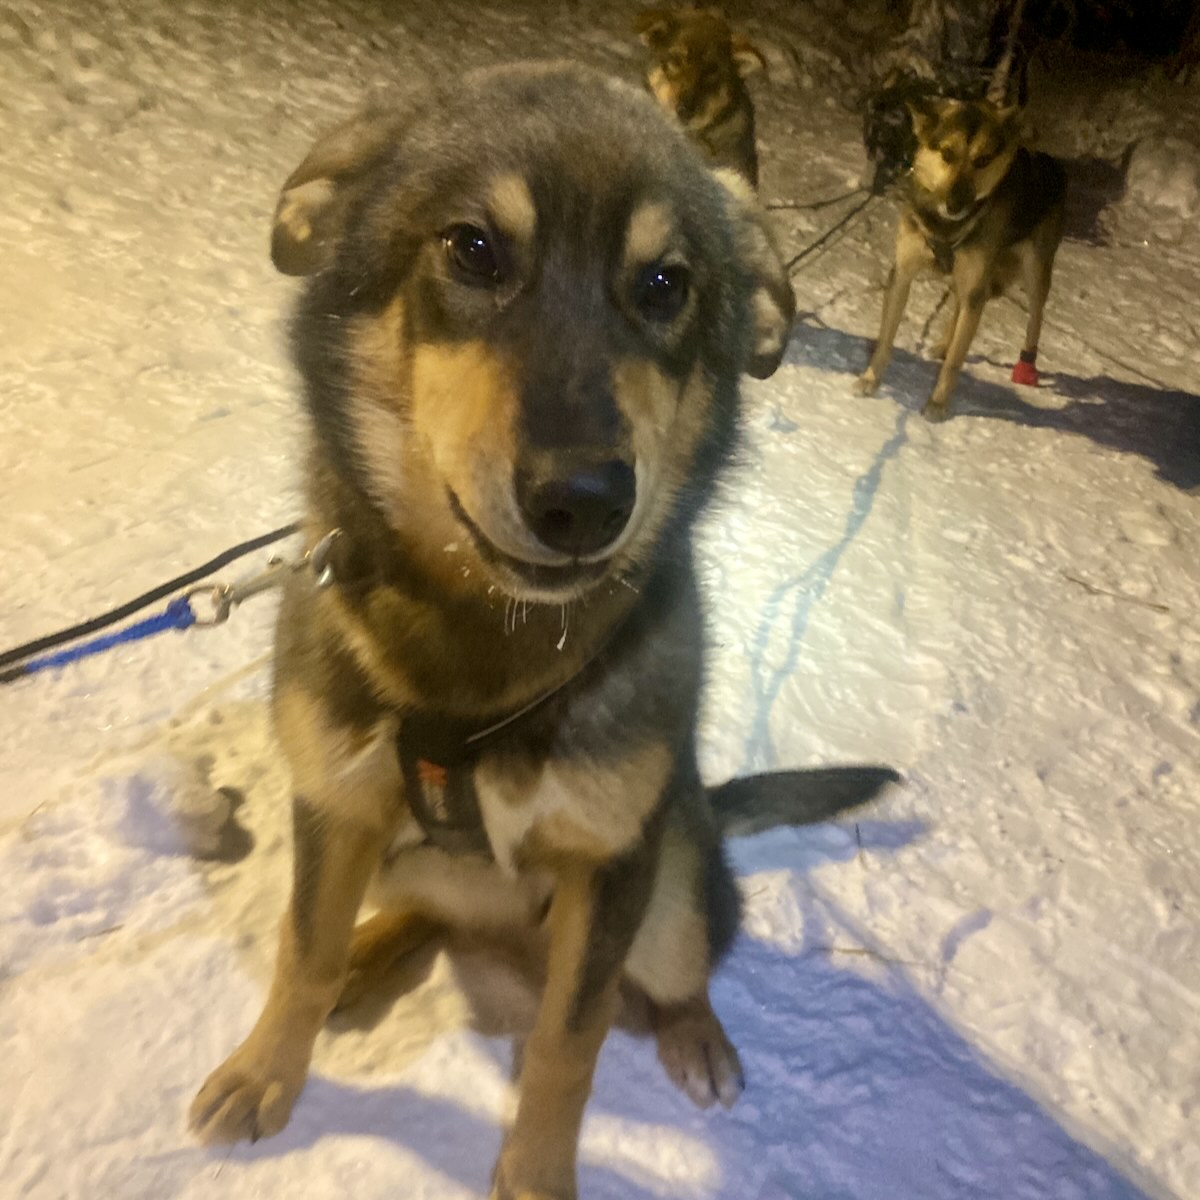 A large but youn sled dog puppy sits in the snow wearing a harness